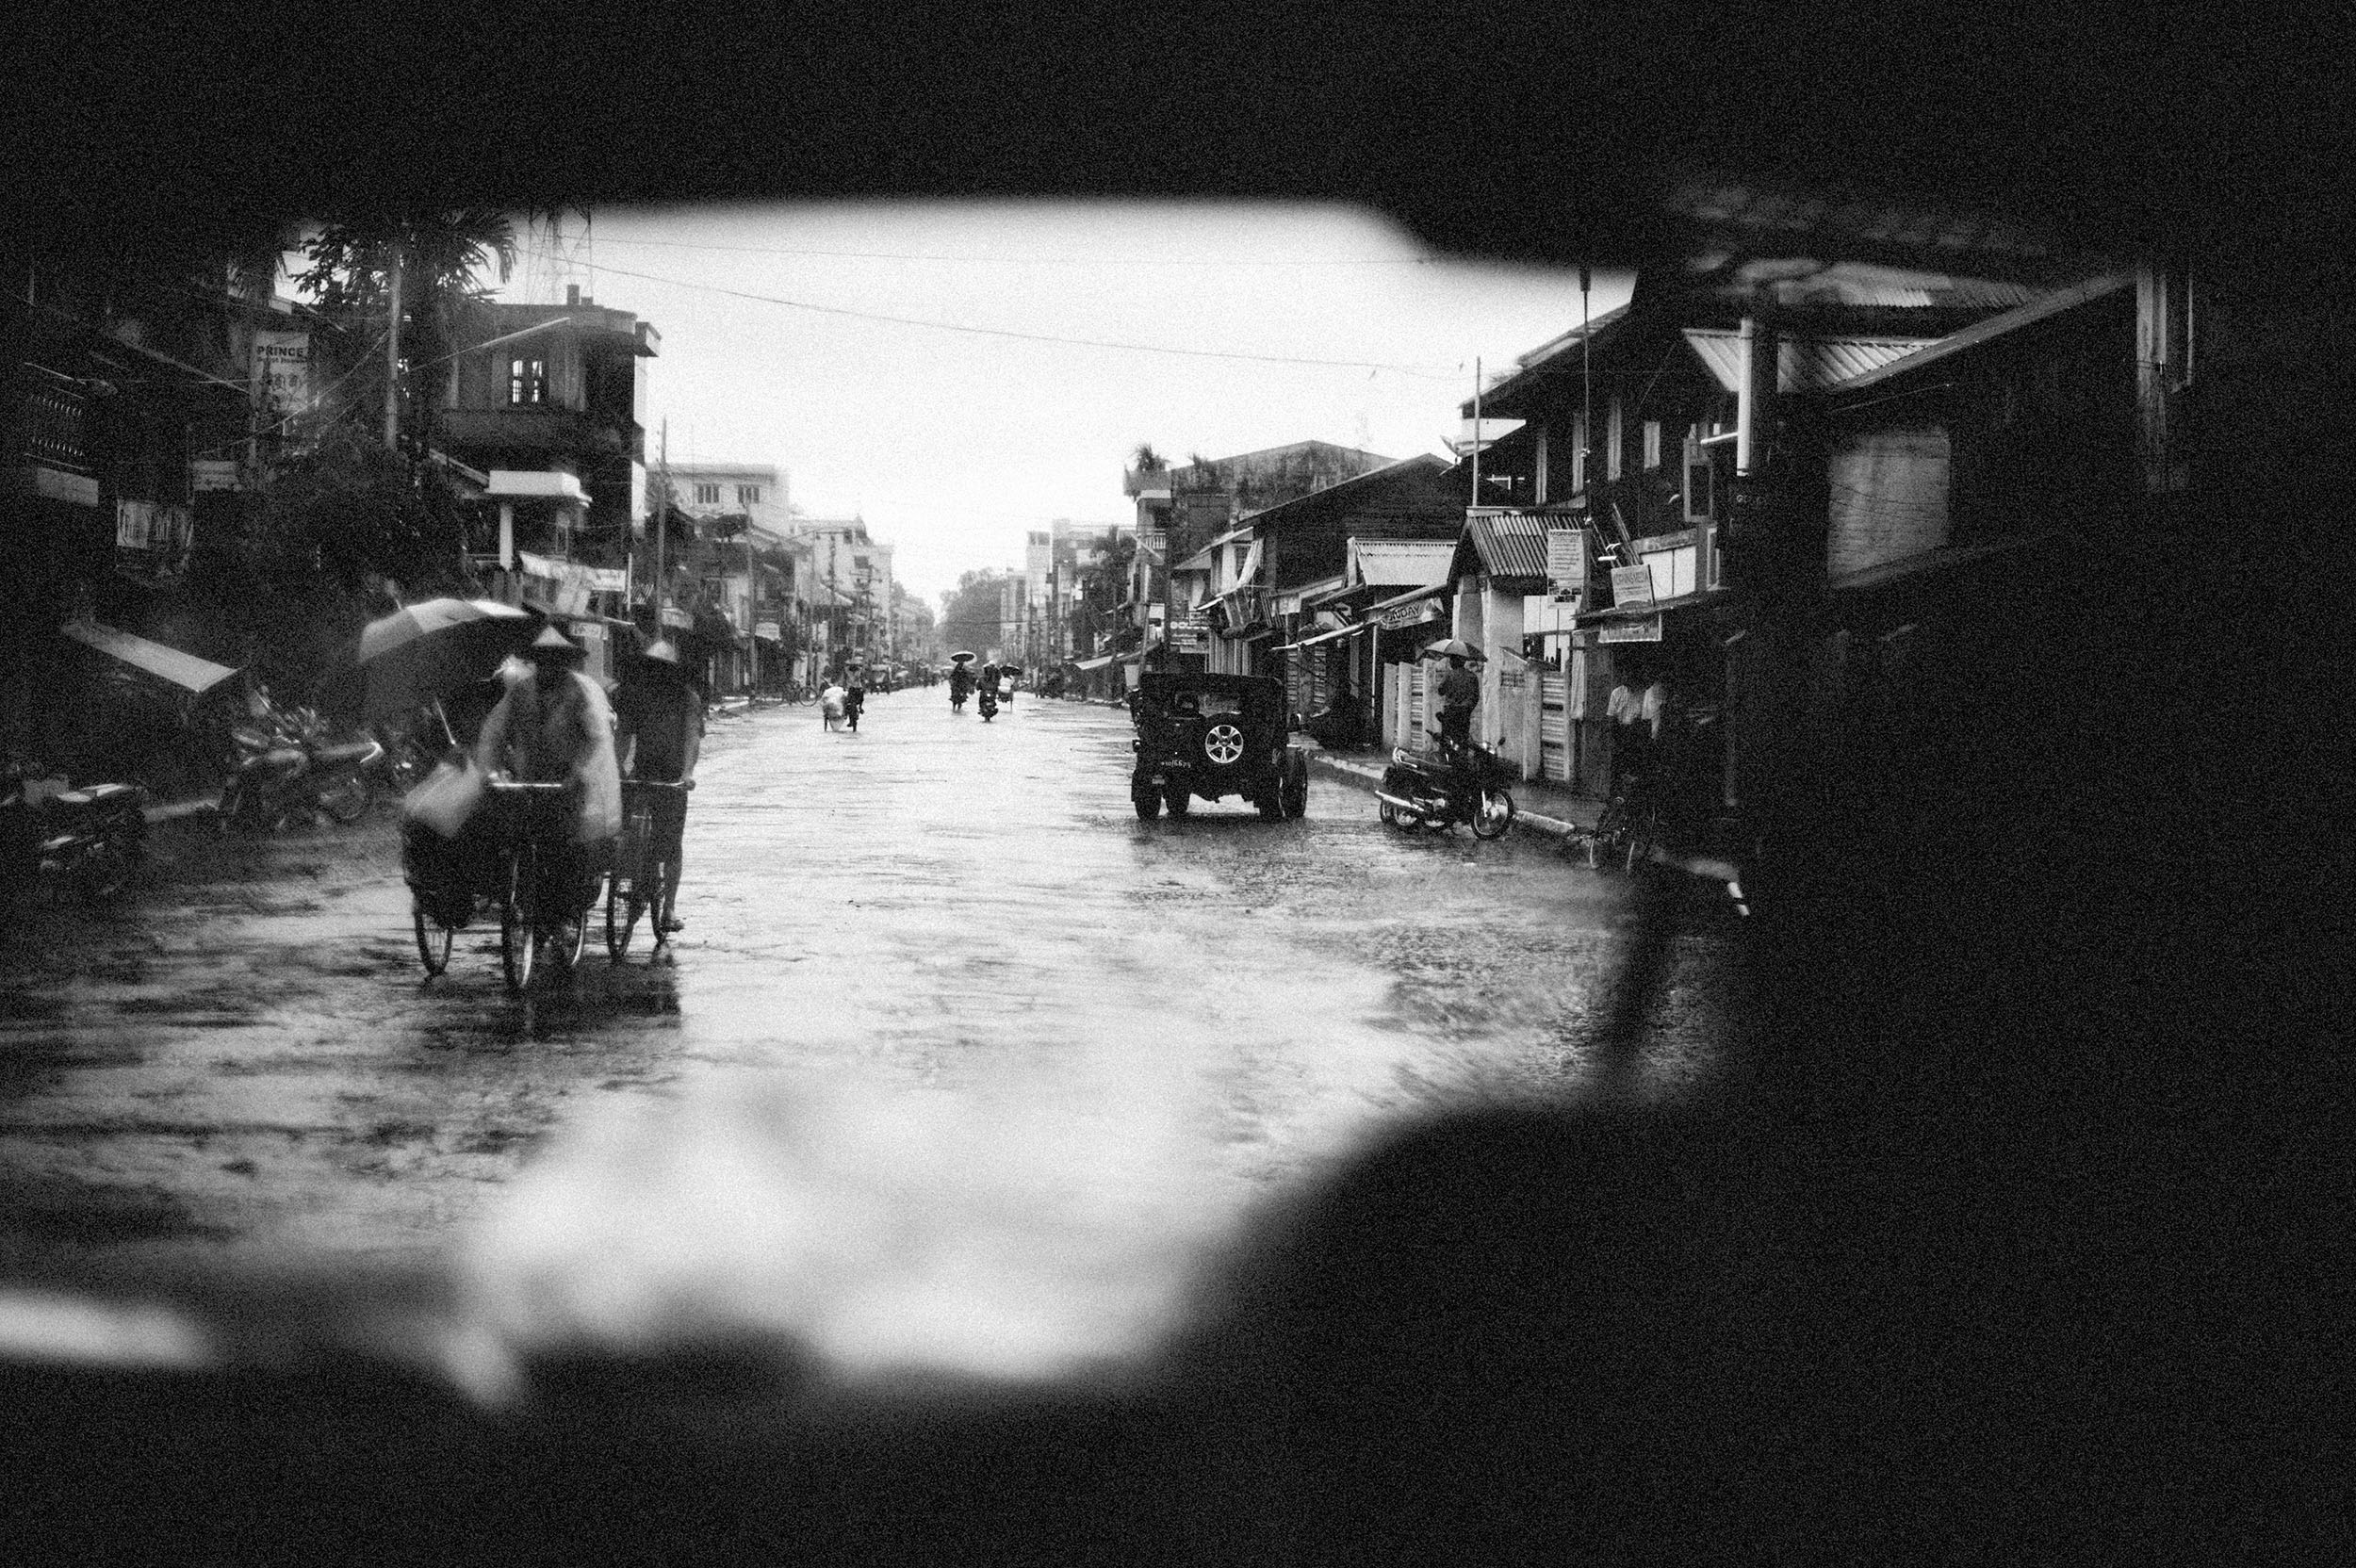 The pot-holed streets of Sittwe, during fighting between Burmese Buddhists and the minority Muslim Rohingya.